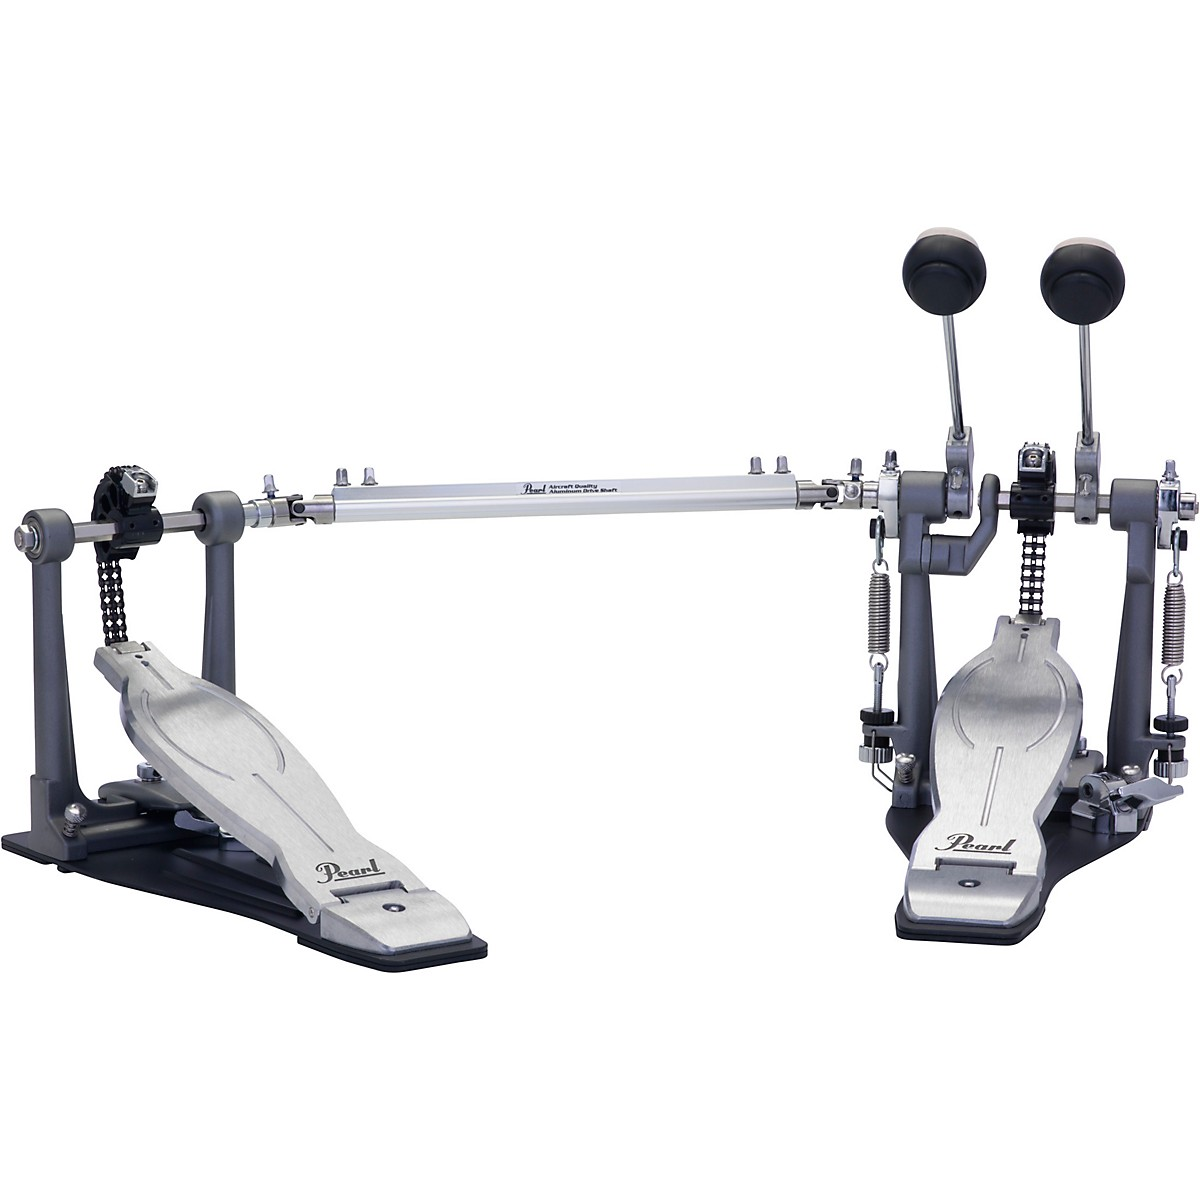 Pearl Eliminator Solo Double Bass Drum Pedal With Black Cam